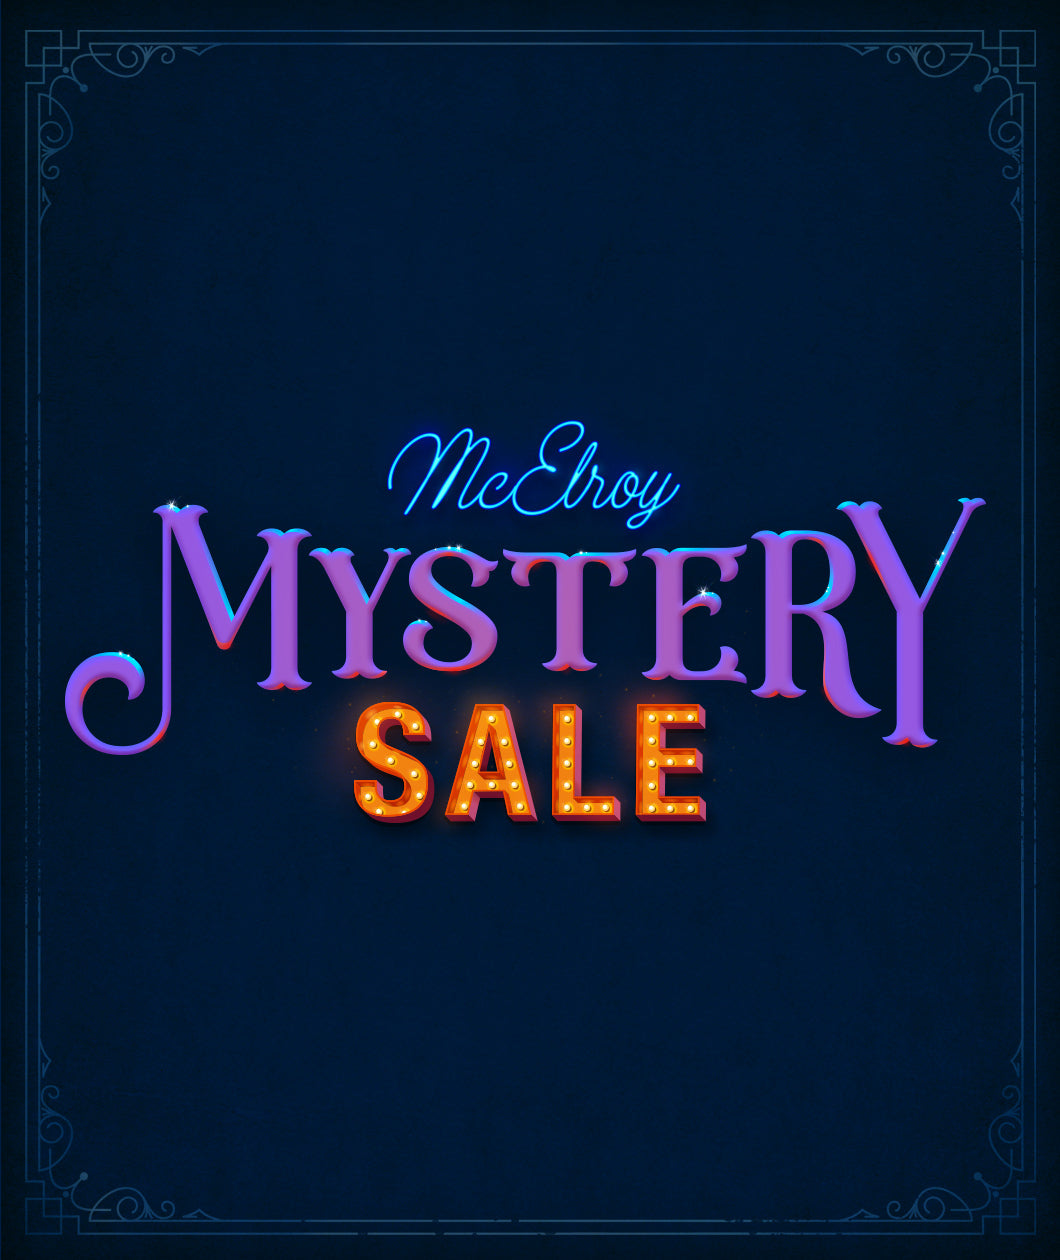 The McElroy Mystery Sale